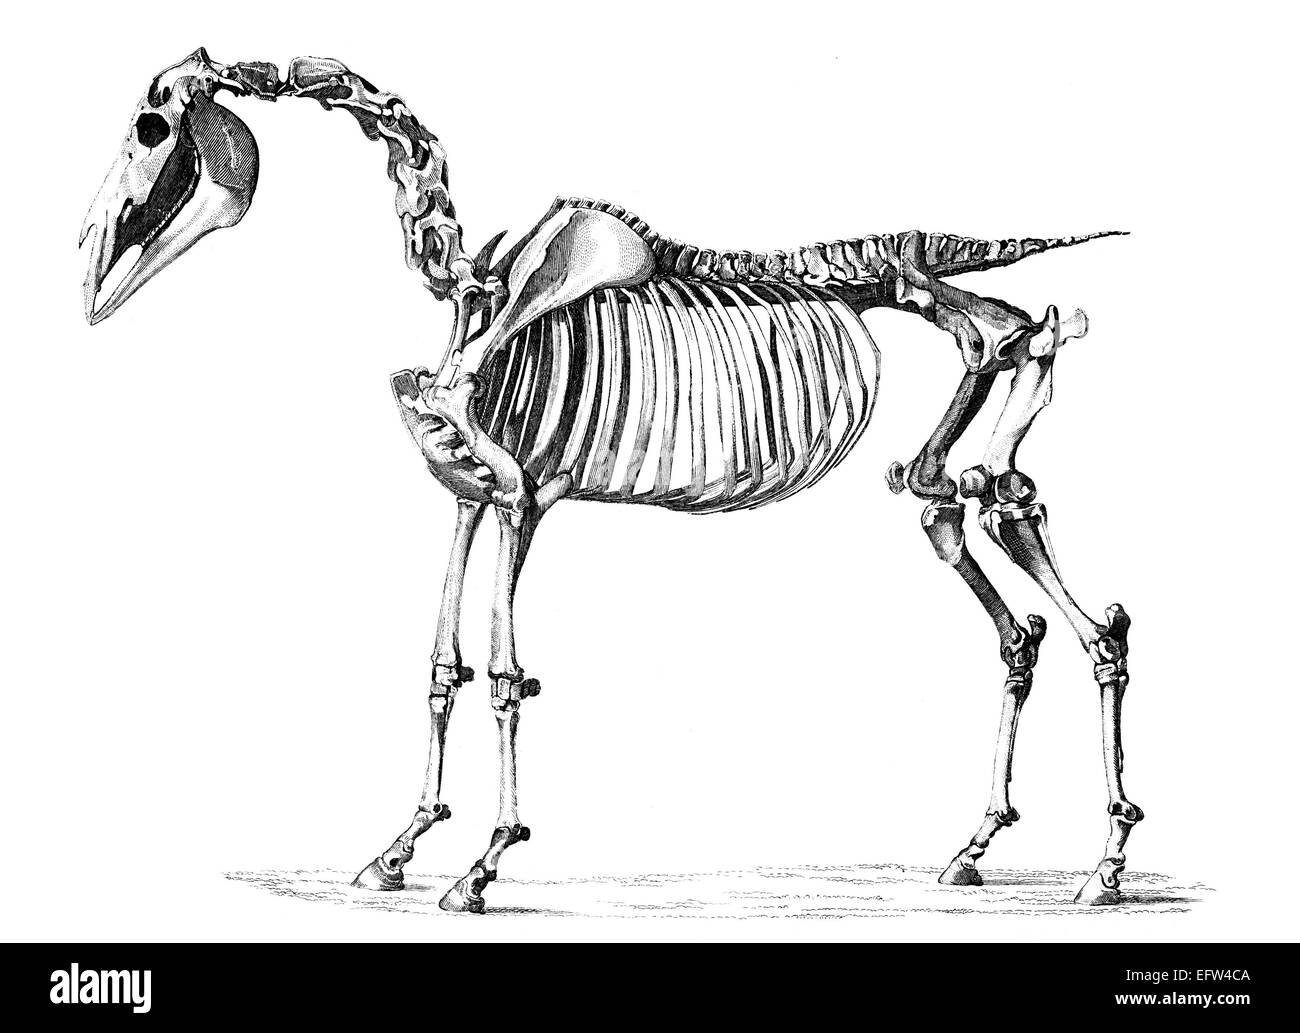 Horse Anatomy Cut Out Stock Images & Pictures - Alamy